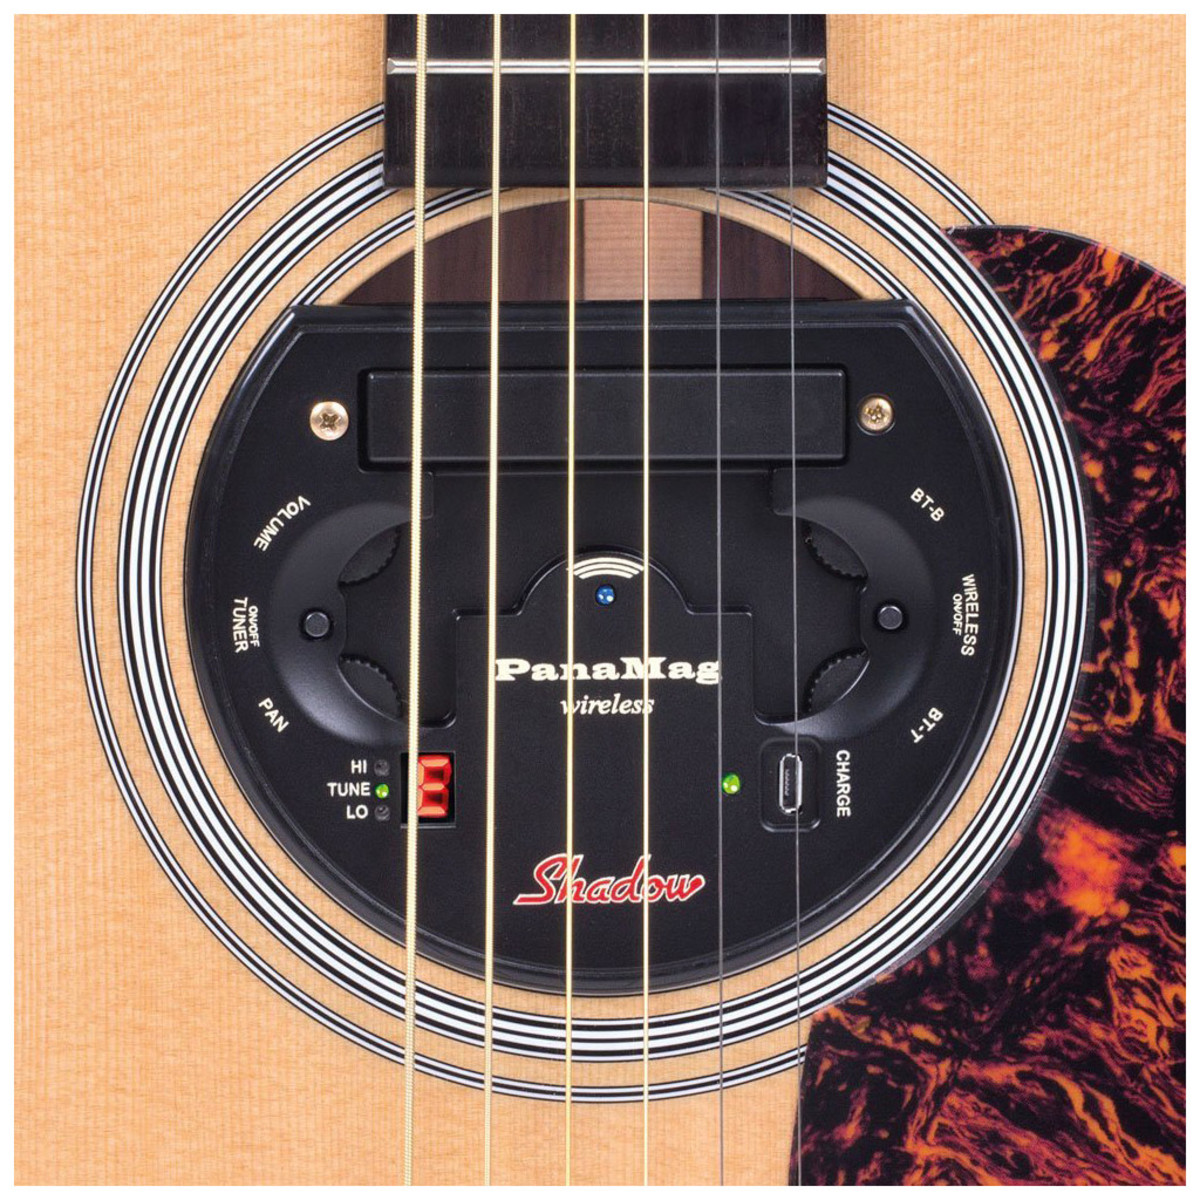 shadow sh panamag wireless stereo acoustic guitar pickup at. Black Bedroom Furniture Sets. Home Design Ideas